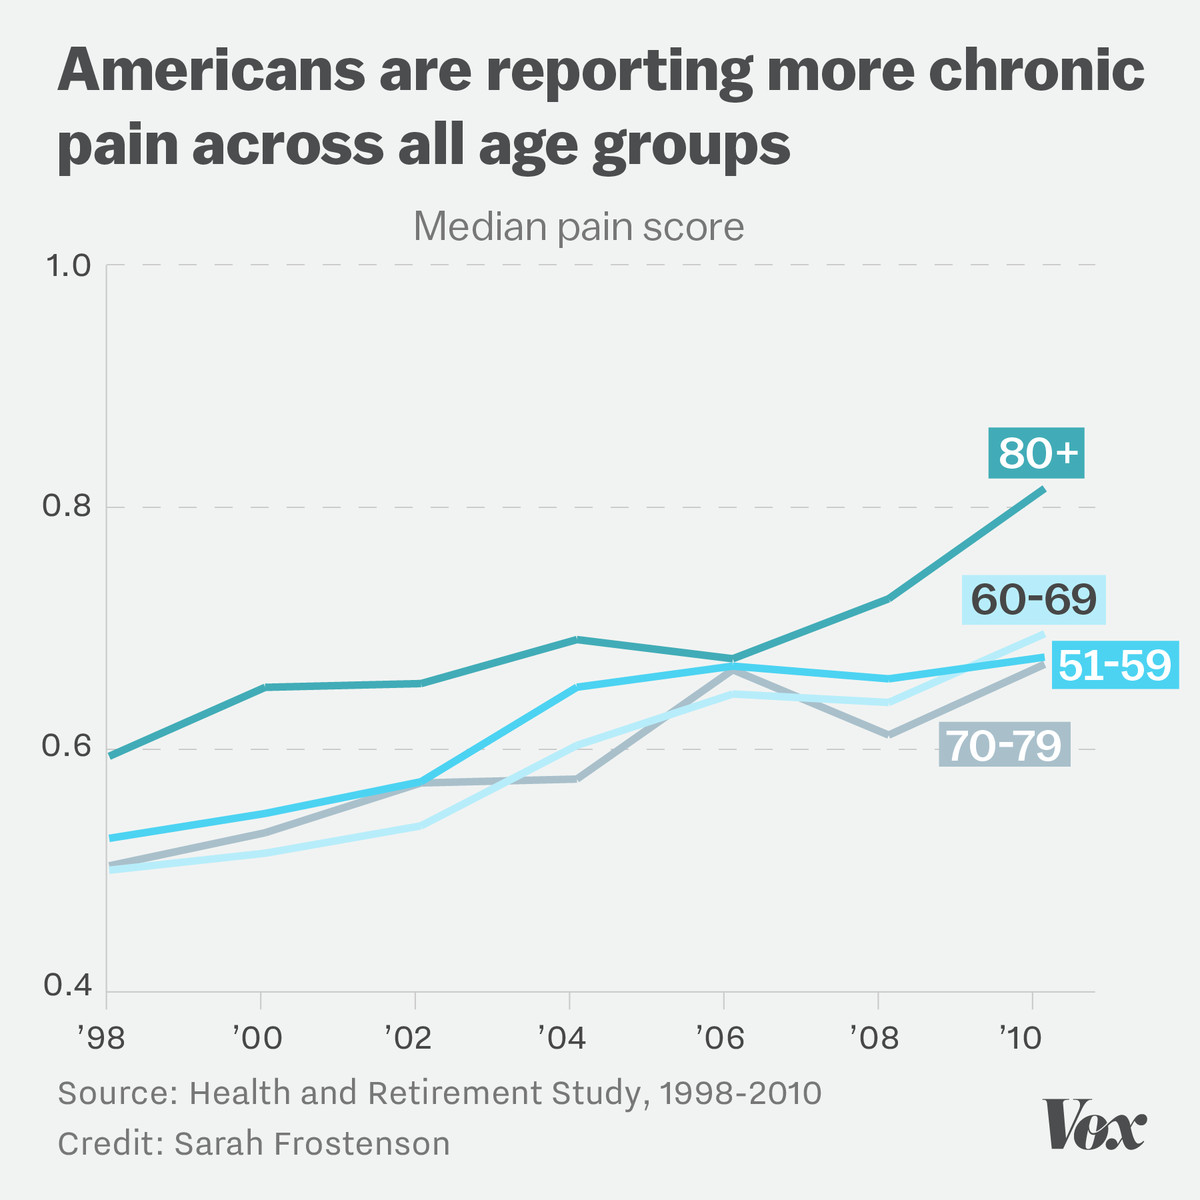 Chart showing that all age groups have experienced more chronic pain since 1998.